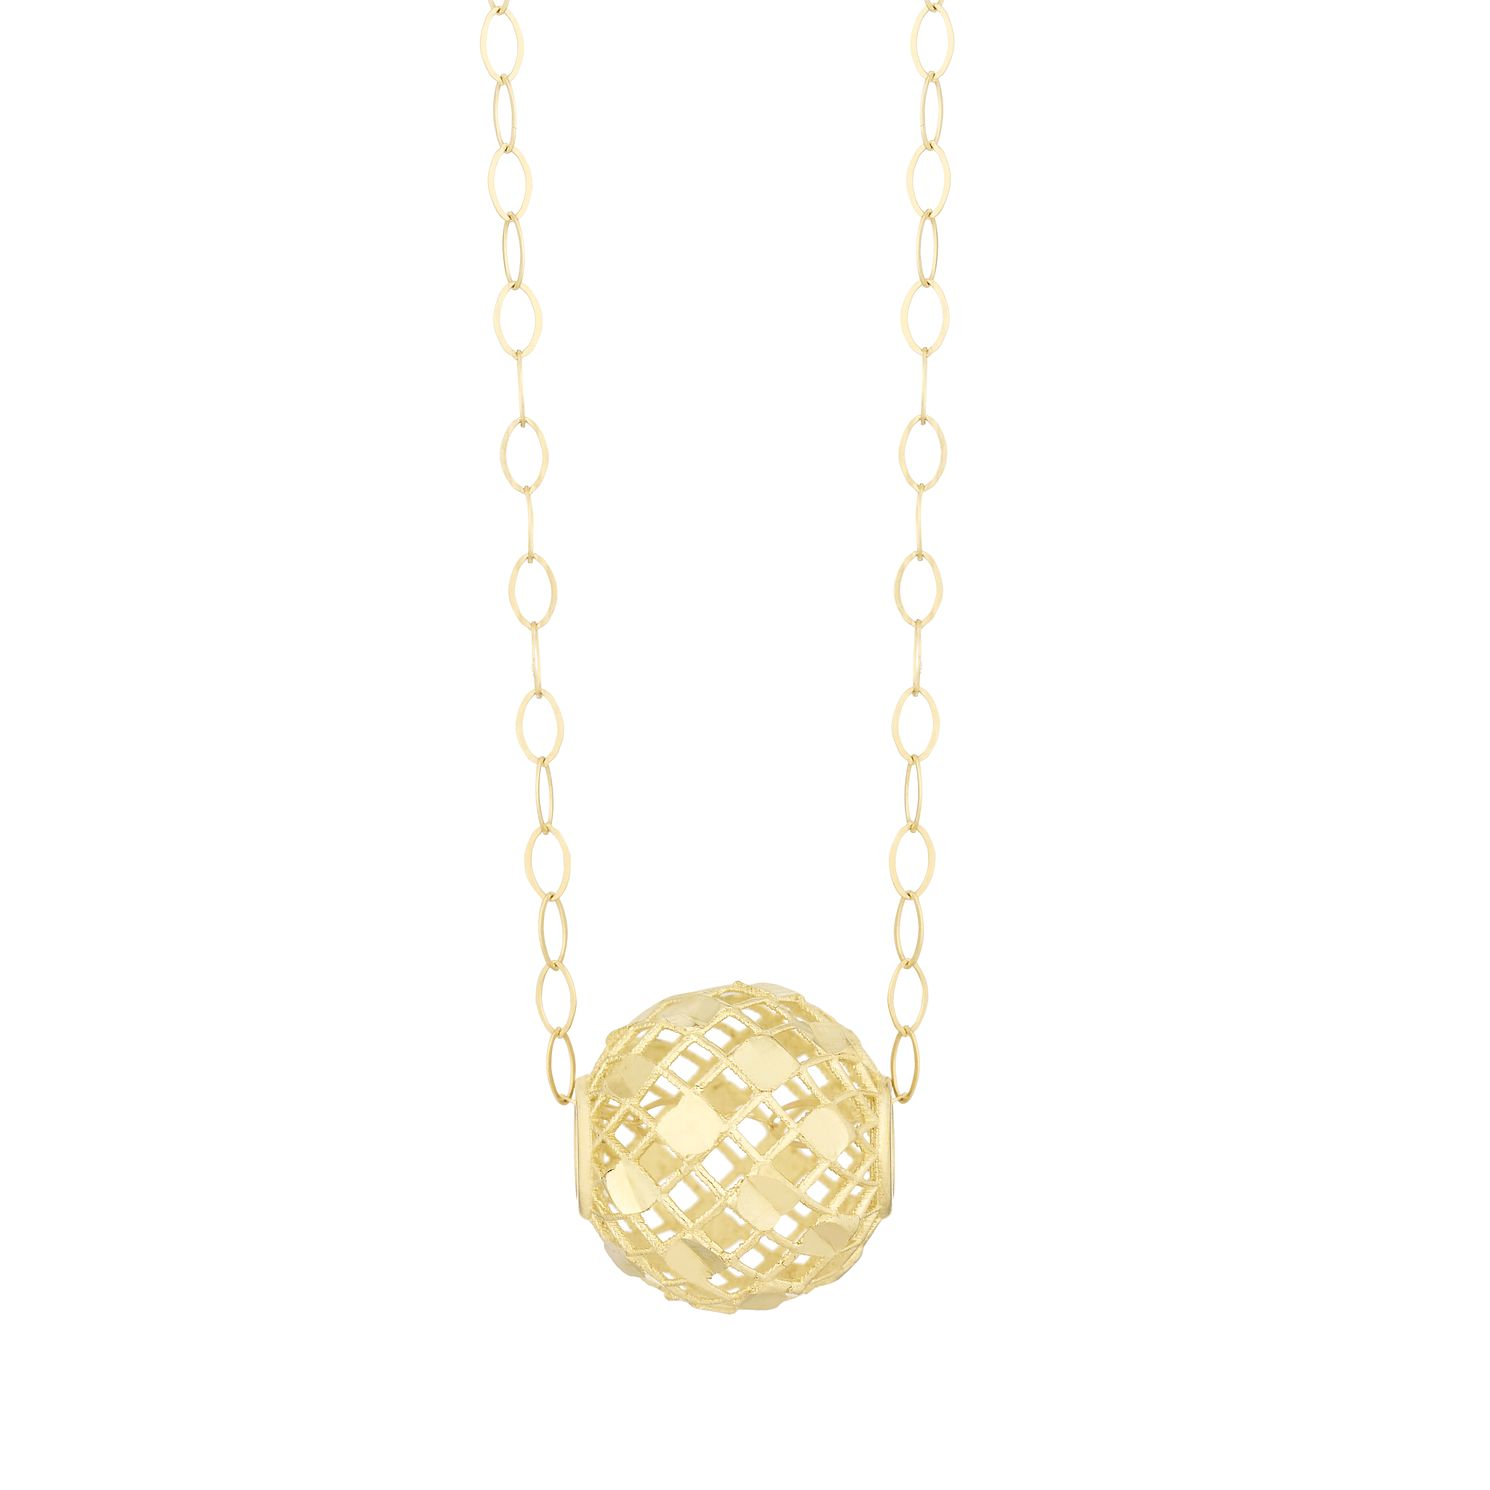 9ct Yellow Gold Cut-Out Mesh Ball Pendant - Product number 3114678